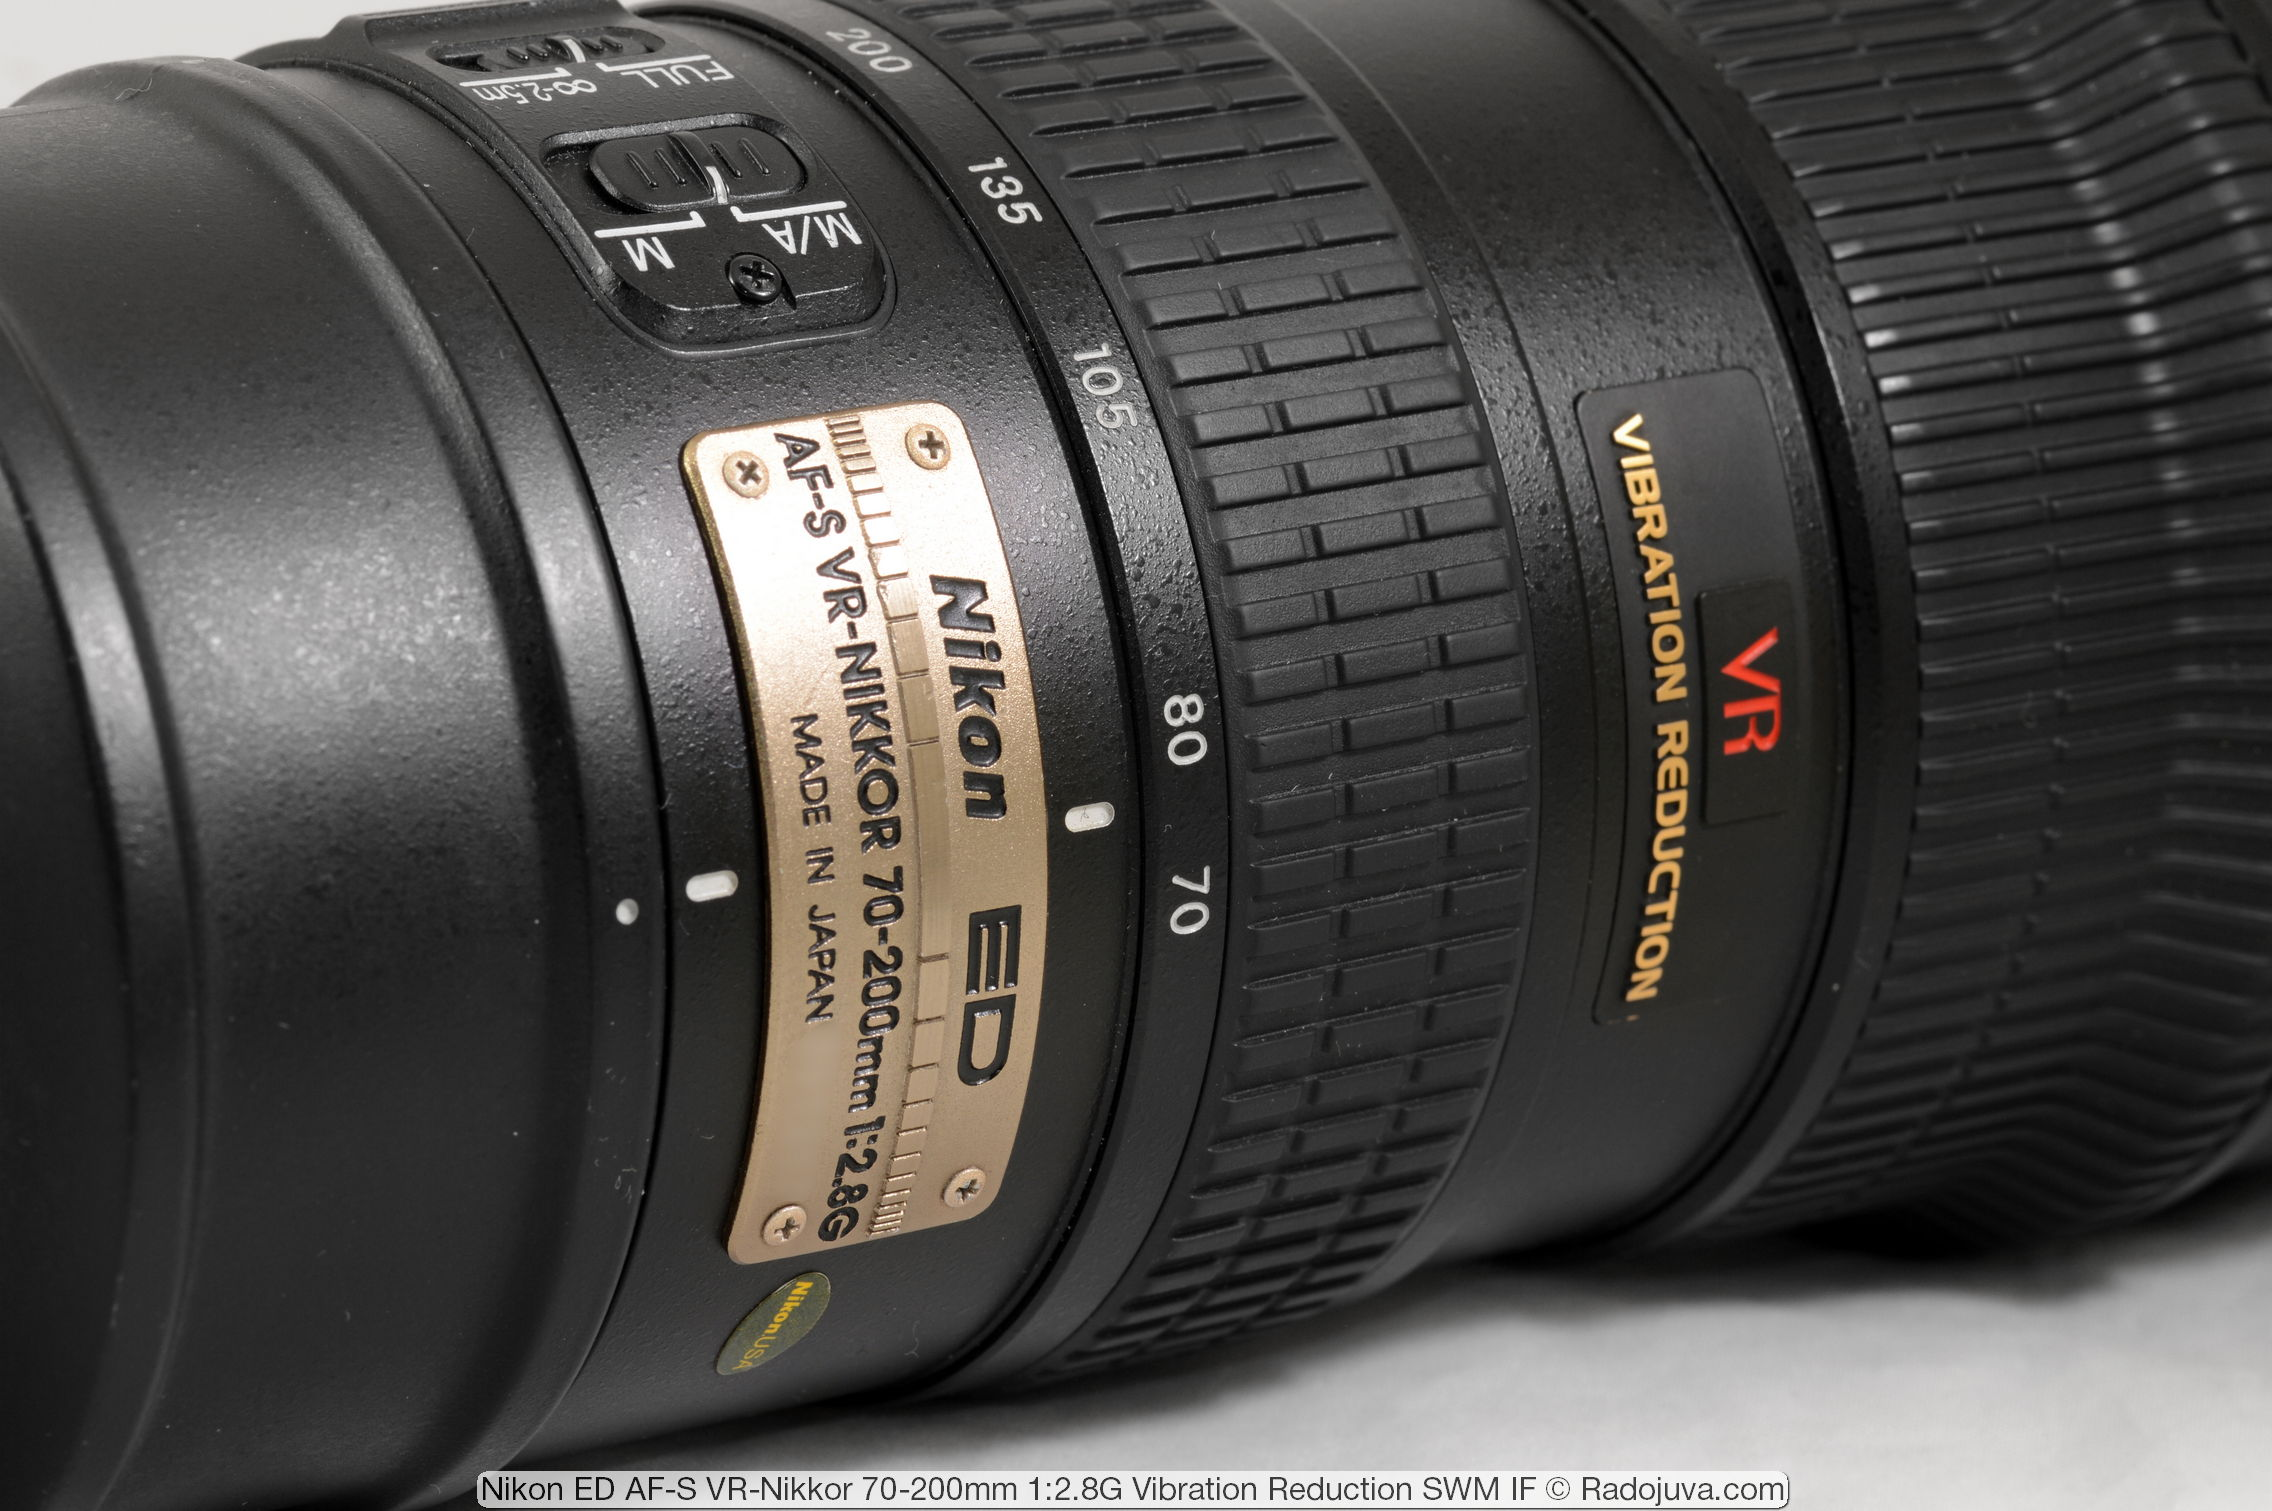 Nikon ED AF-S VR-Nikkor 70-200mm 1:2.8G (Vibration Reduction SWM IF)